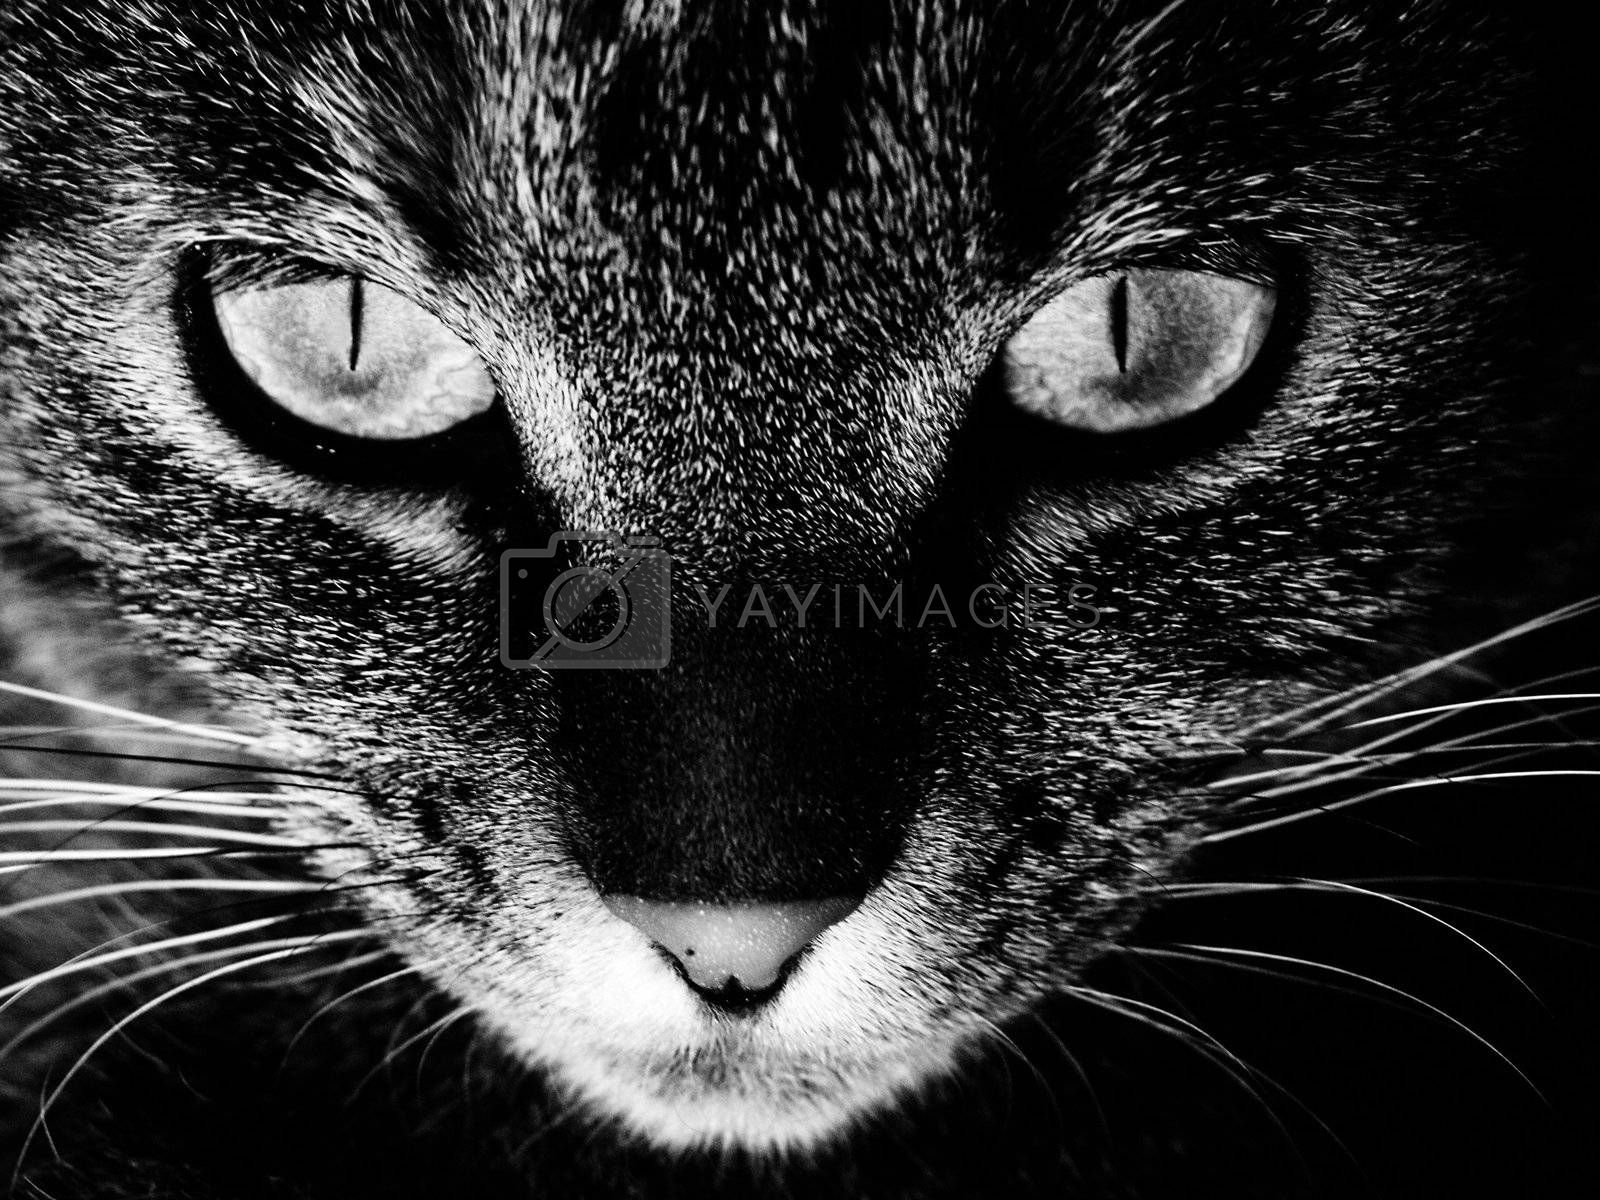 The face of a cat in black and white.